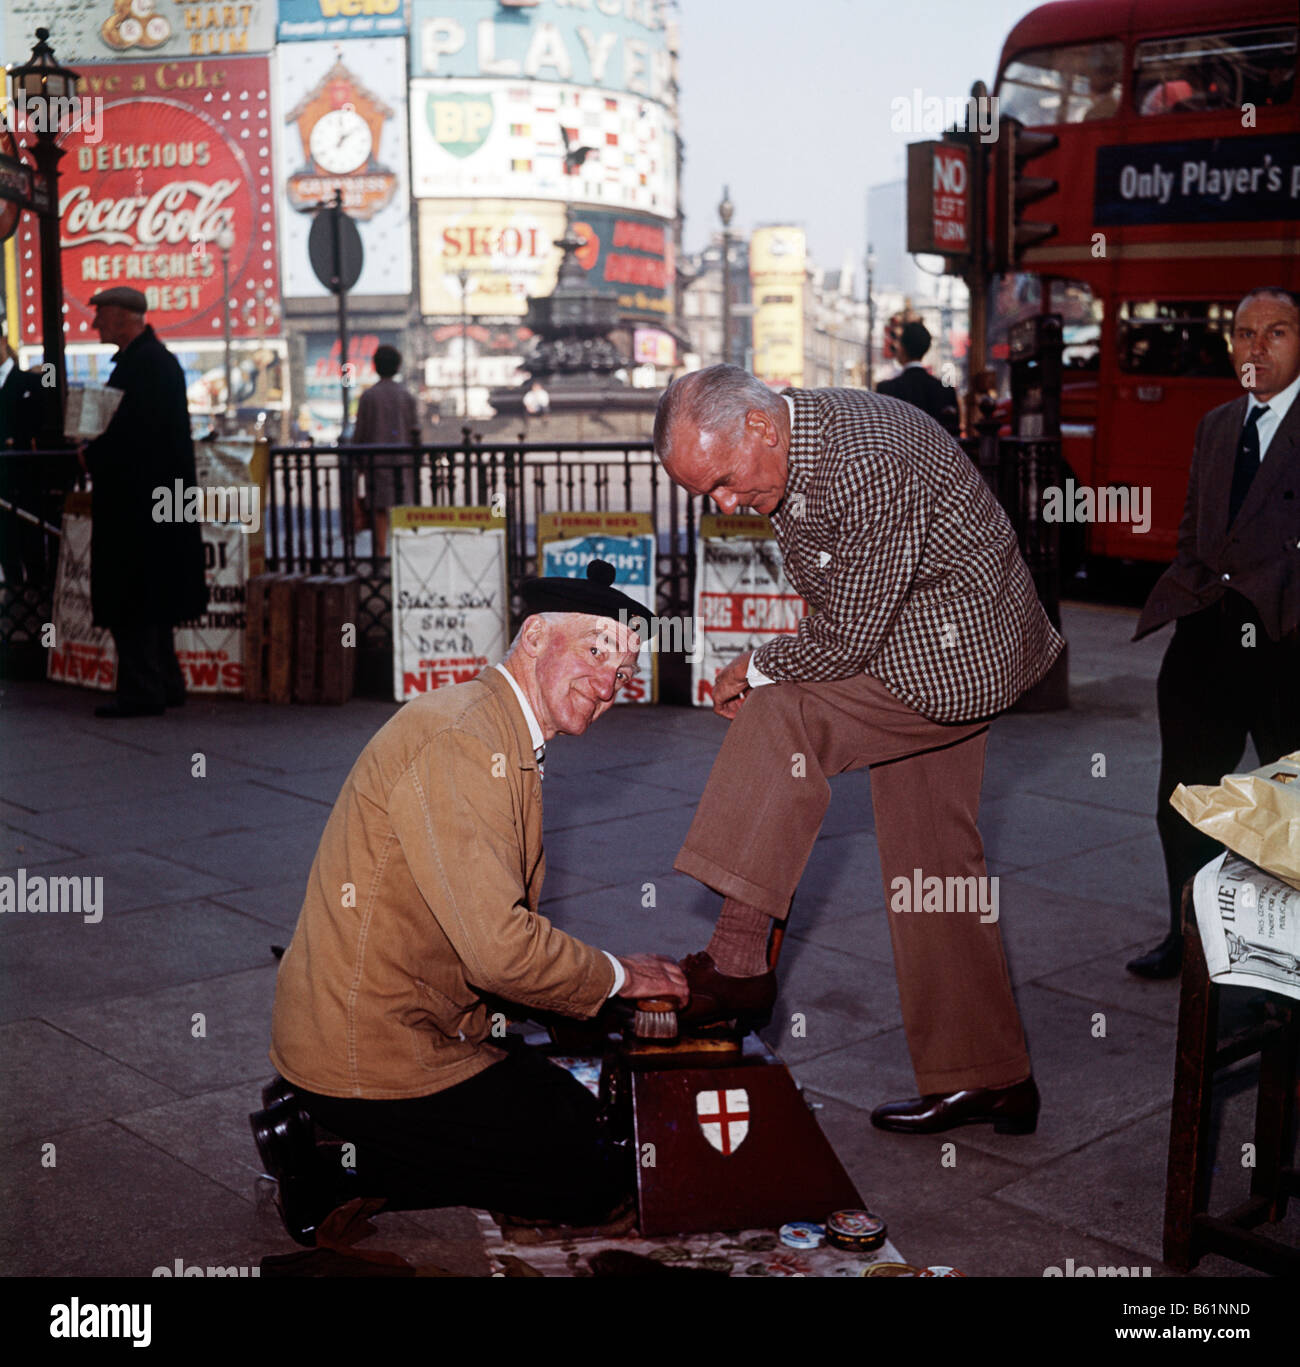 The Street Cries of London. Viven de Gurr St George, a shoe shine at work in Piccadilly, one of the last shoe shines - Stock Image